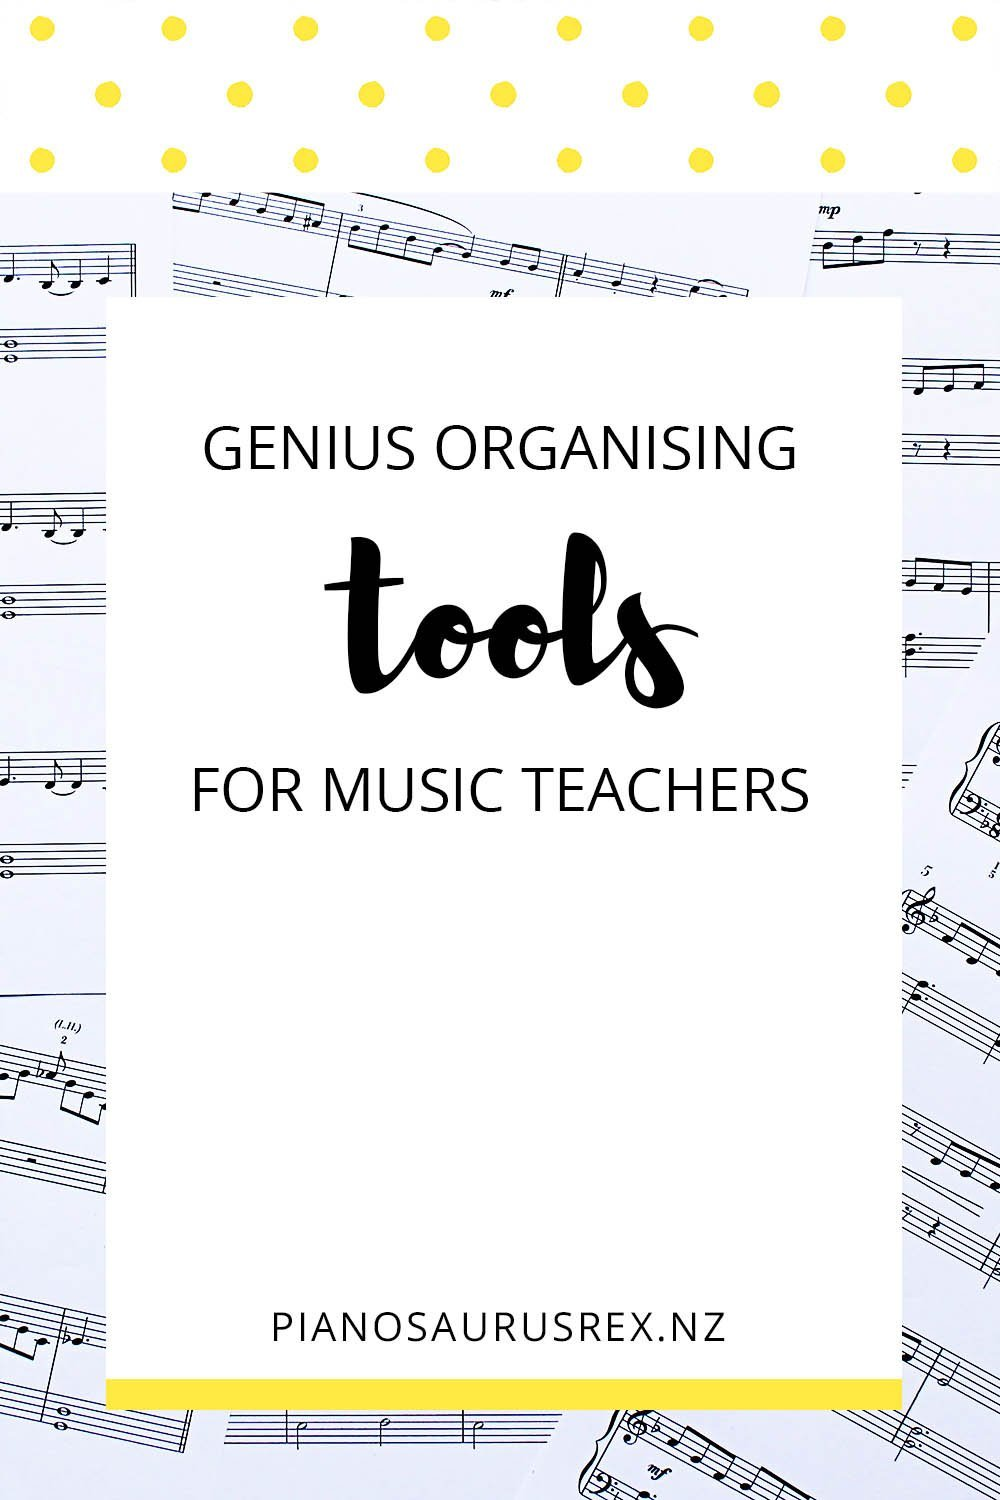 Genius Organising Tools for Music Teachers